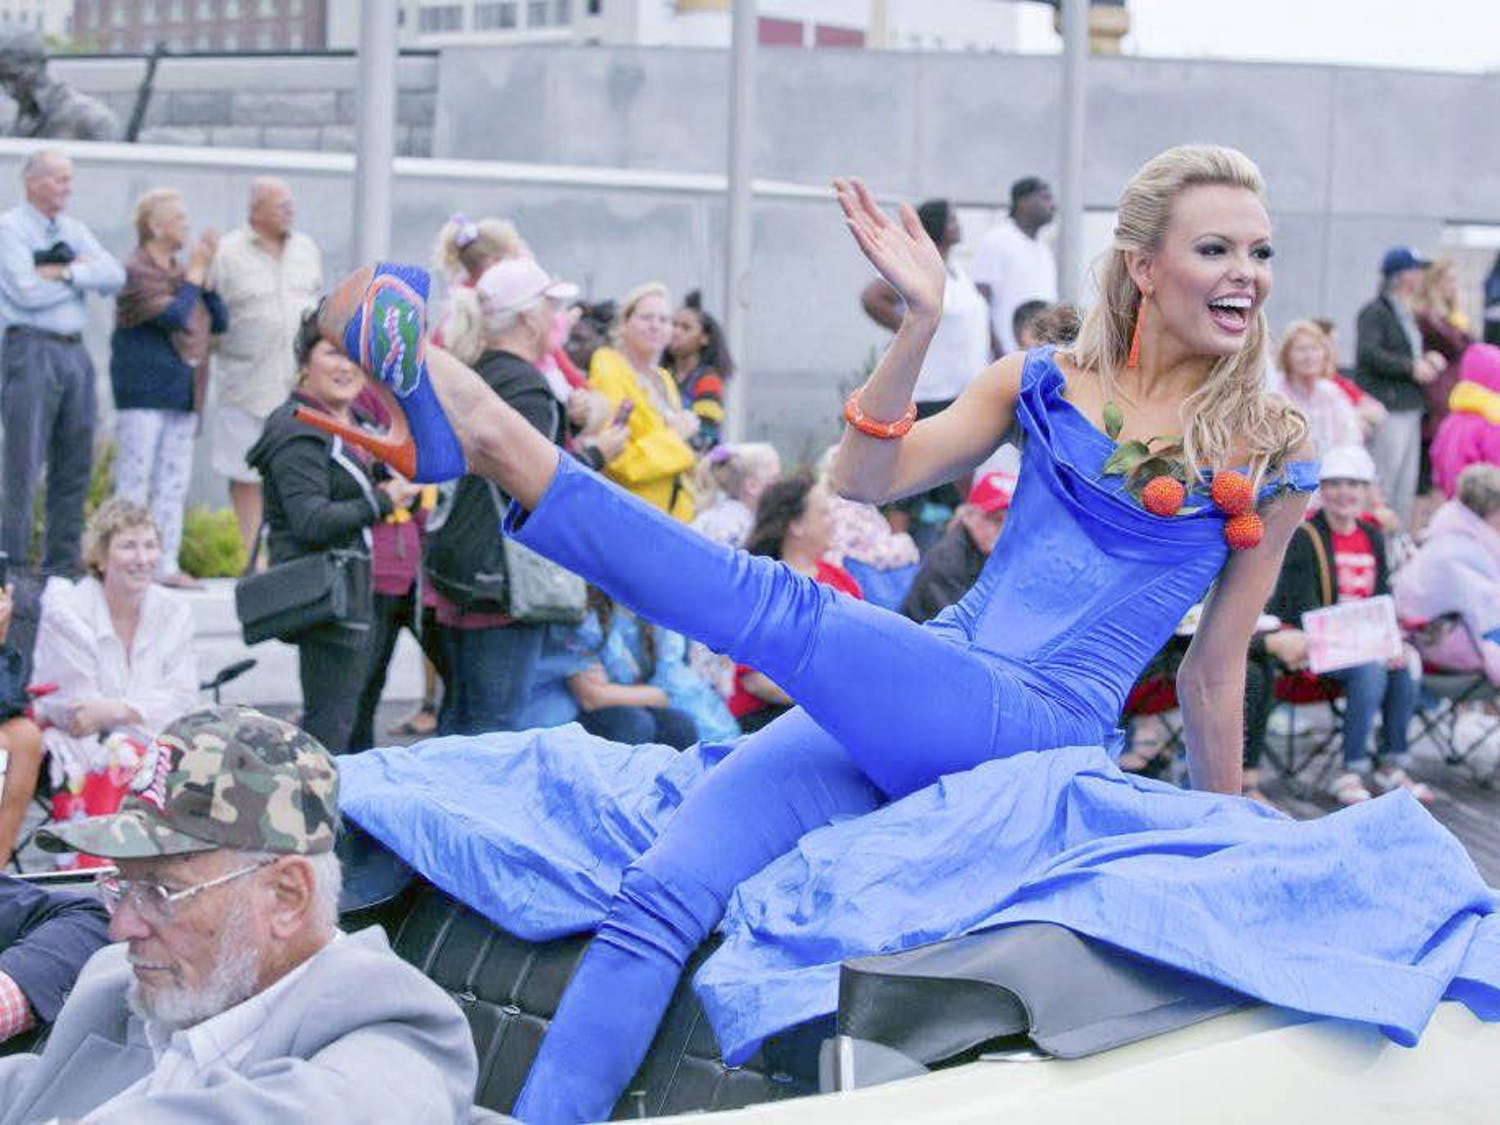 "Mary Katherine Fechel, 20, participates in the Show Me Your Shoes parade in Atlantic City Sept. 12, 2015, as a part of Miss America contestant traditions.Candidates wore shoes to represent their state. ""It was such a testament that the Gator nation is everywhere,"" Fechel said."